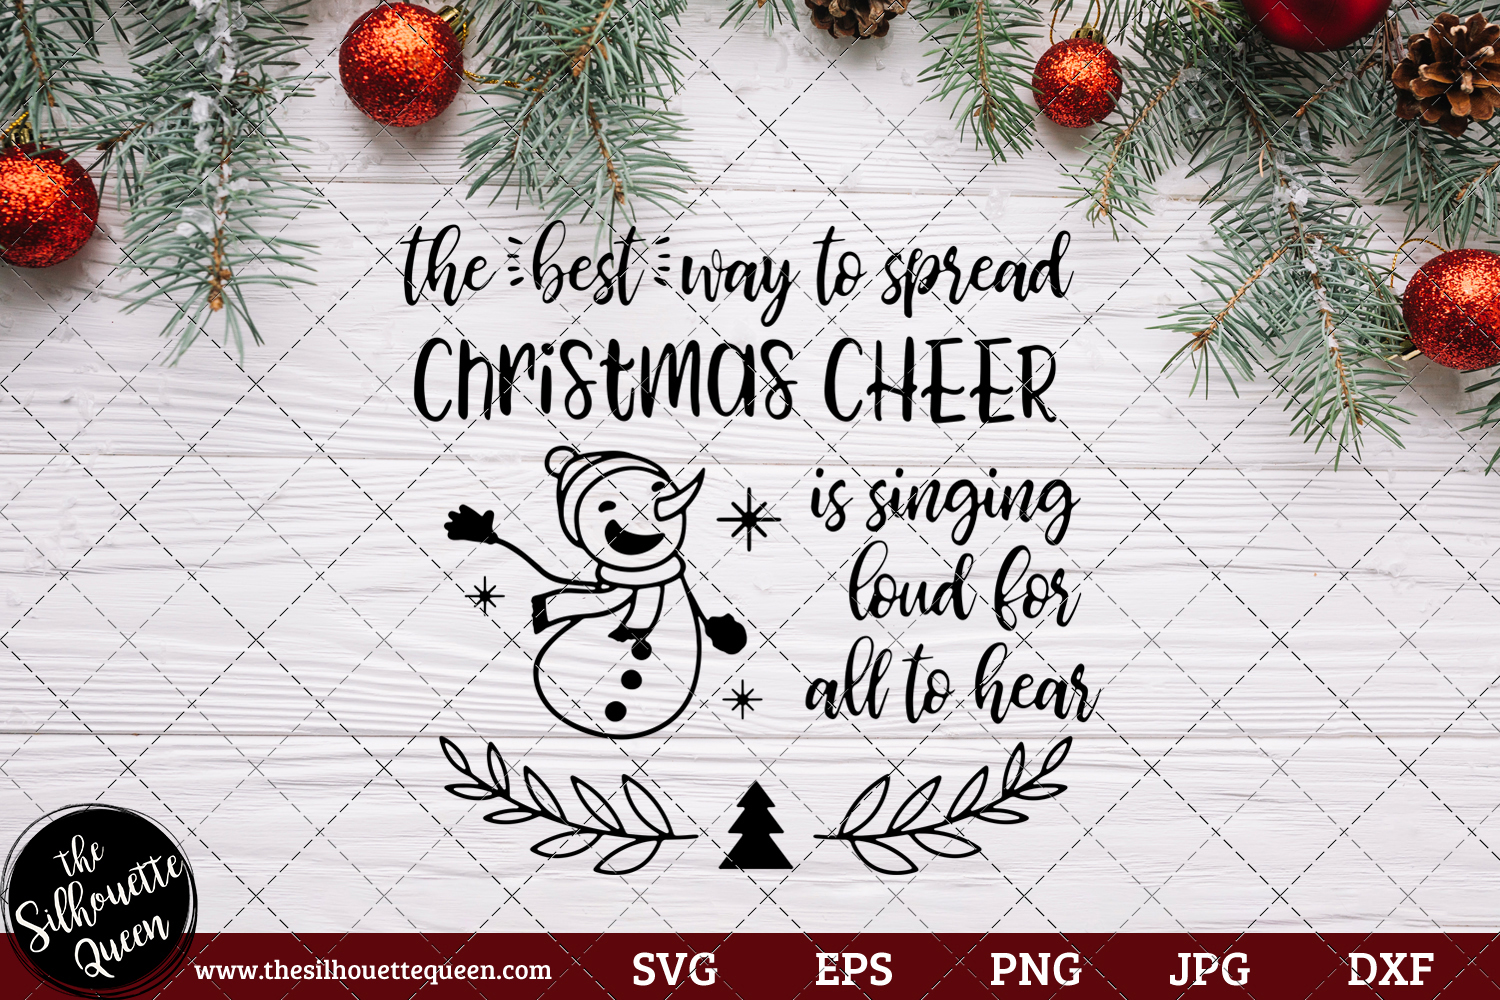 Download Free The Best Way To Spread Christmas Cheer Graphic By for Cricut Explore, Silhouette and other cutting machines.